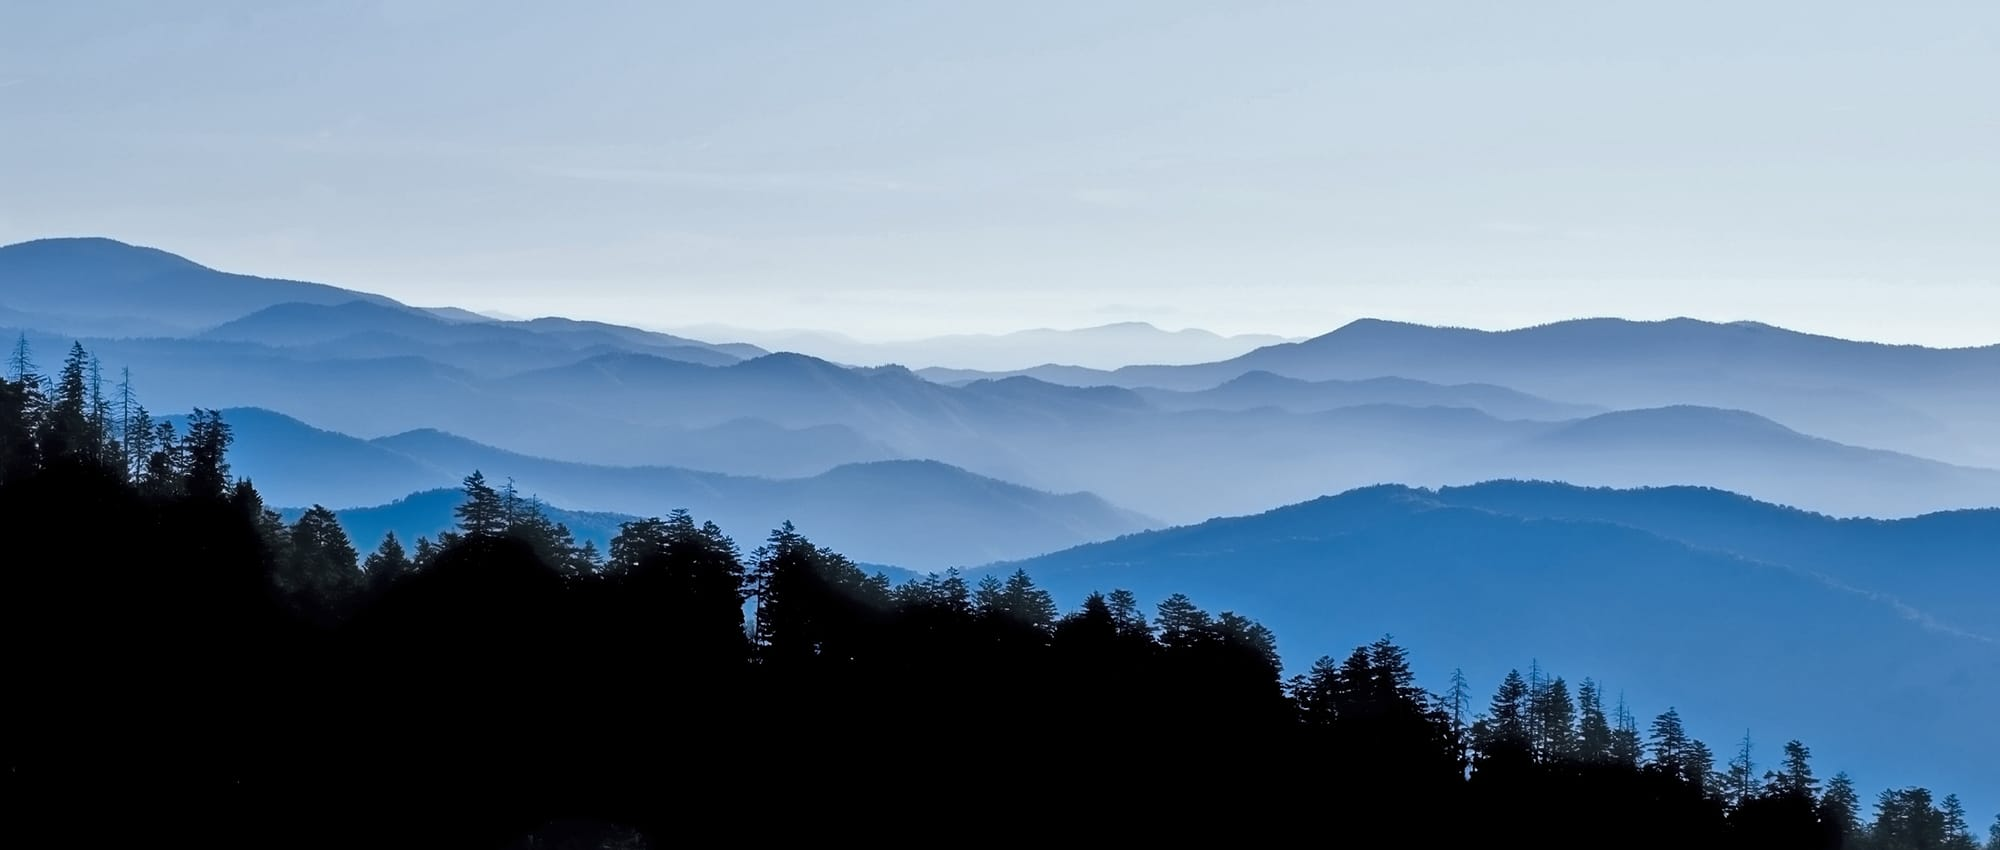 Panoramic View from Clingmans Dome, Great Smoky Mountains National Park, Tenessee